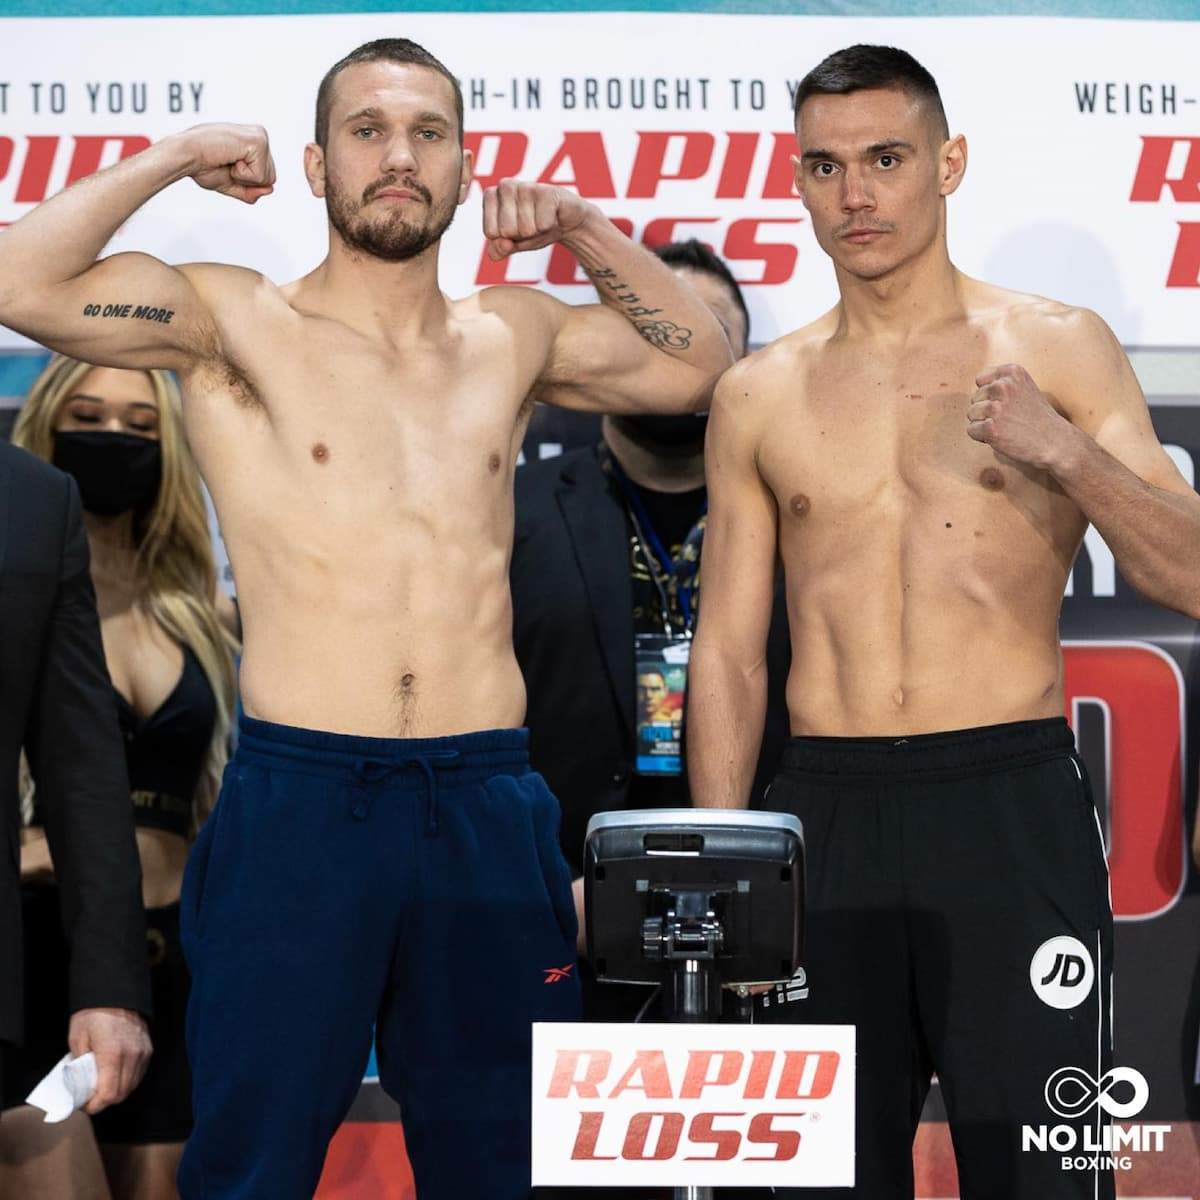 Steve Spark and Tim Tszyu at the weigh-ins